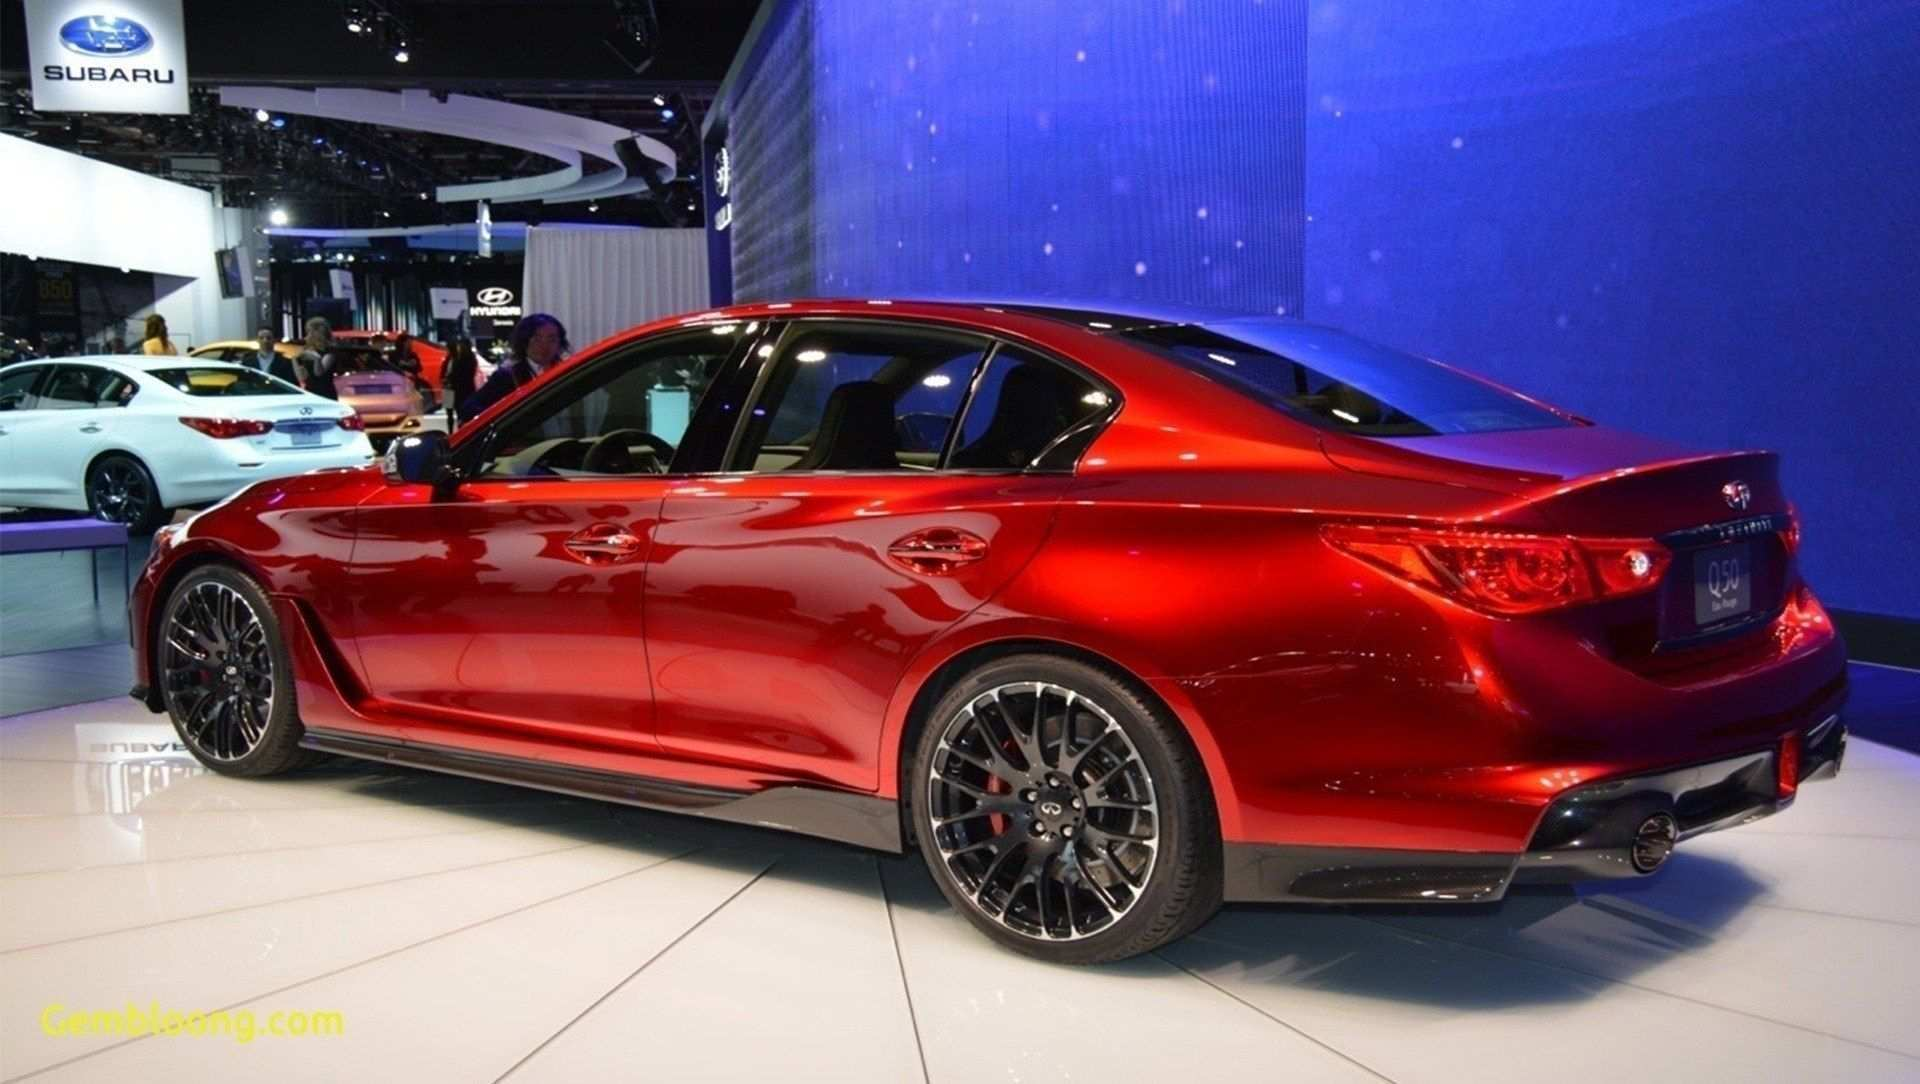 67 The Best 2020 Infiniti Q50 Redesign Price Design And Review